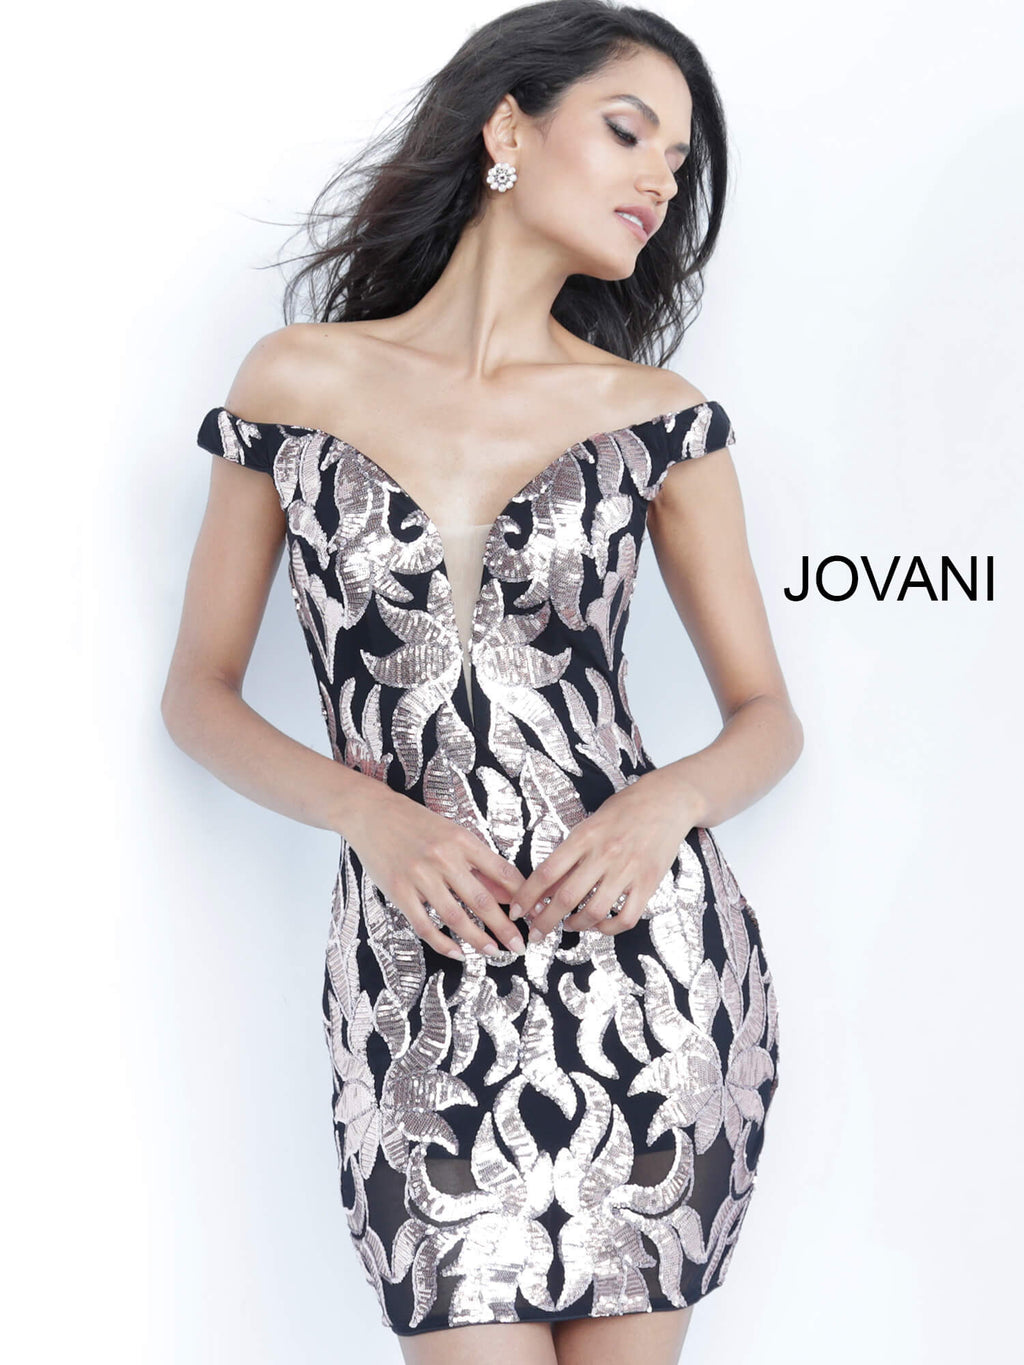 JOVANI 8004 Off Shoulder Cocktail Dress